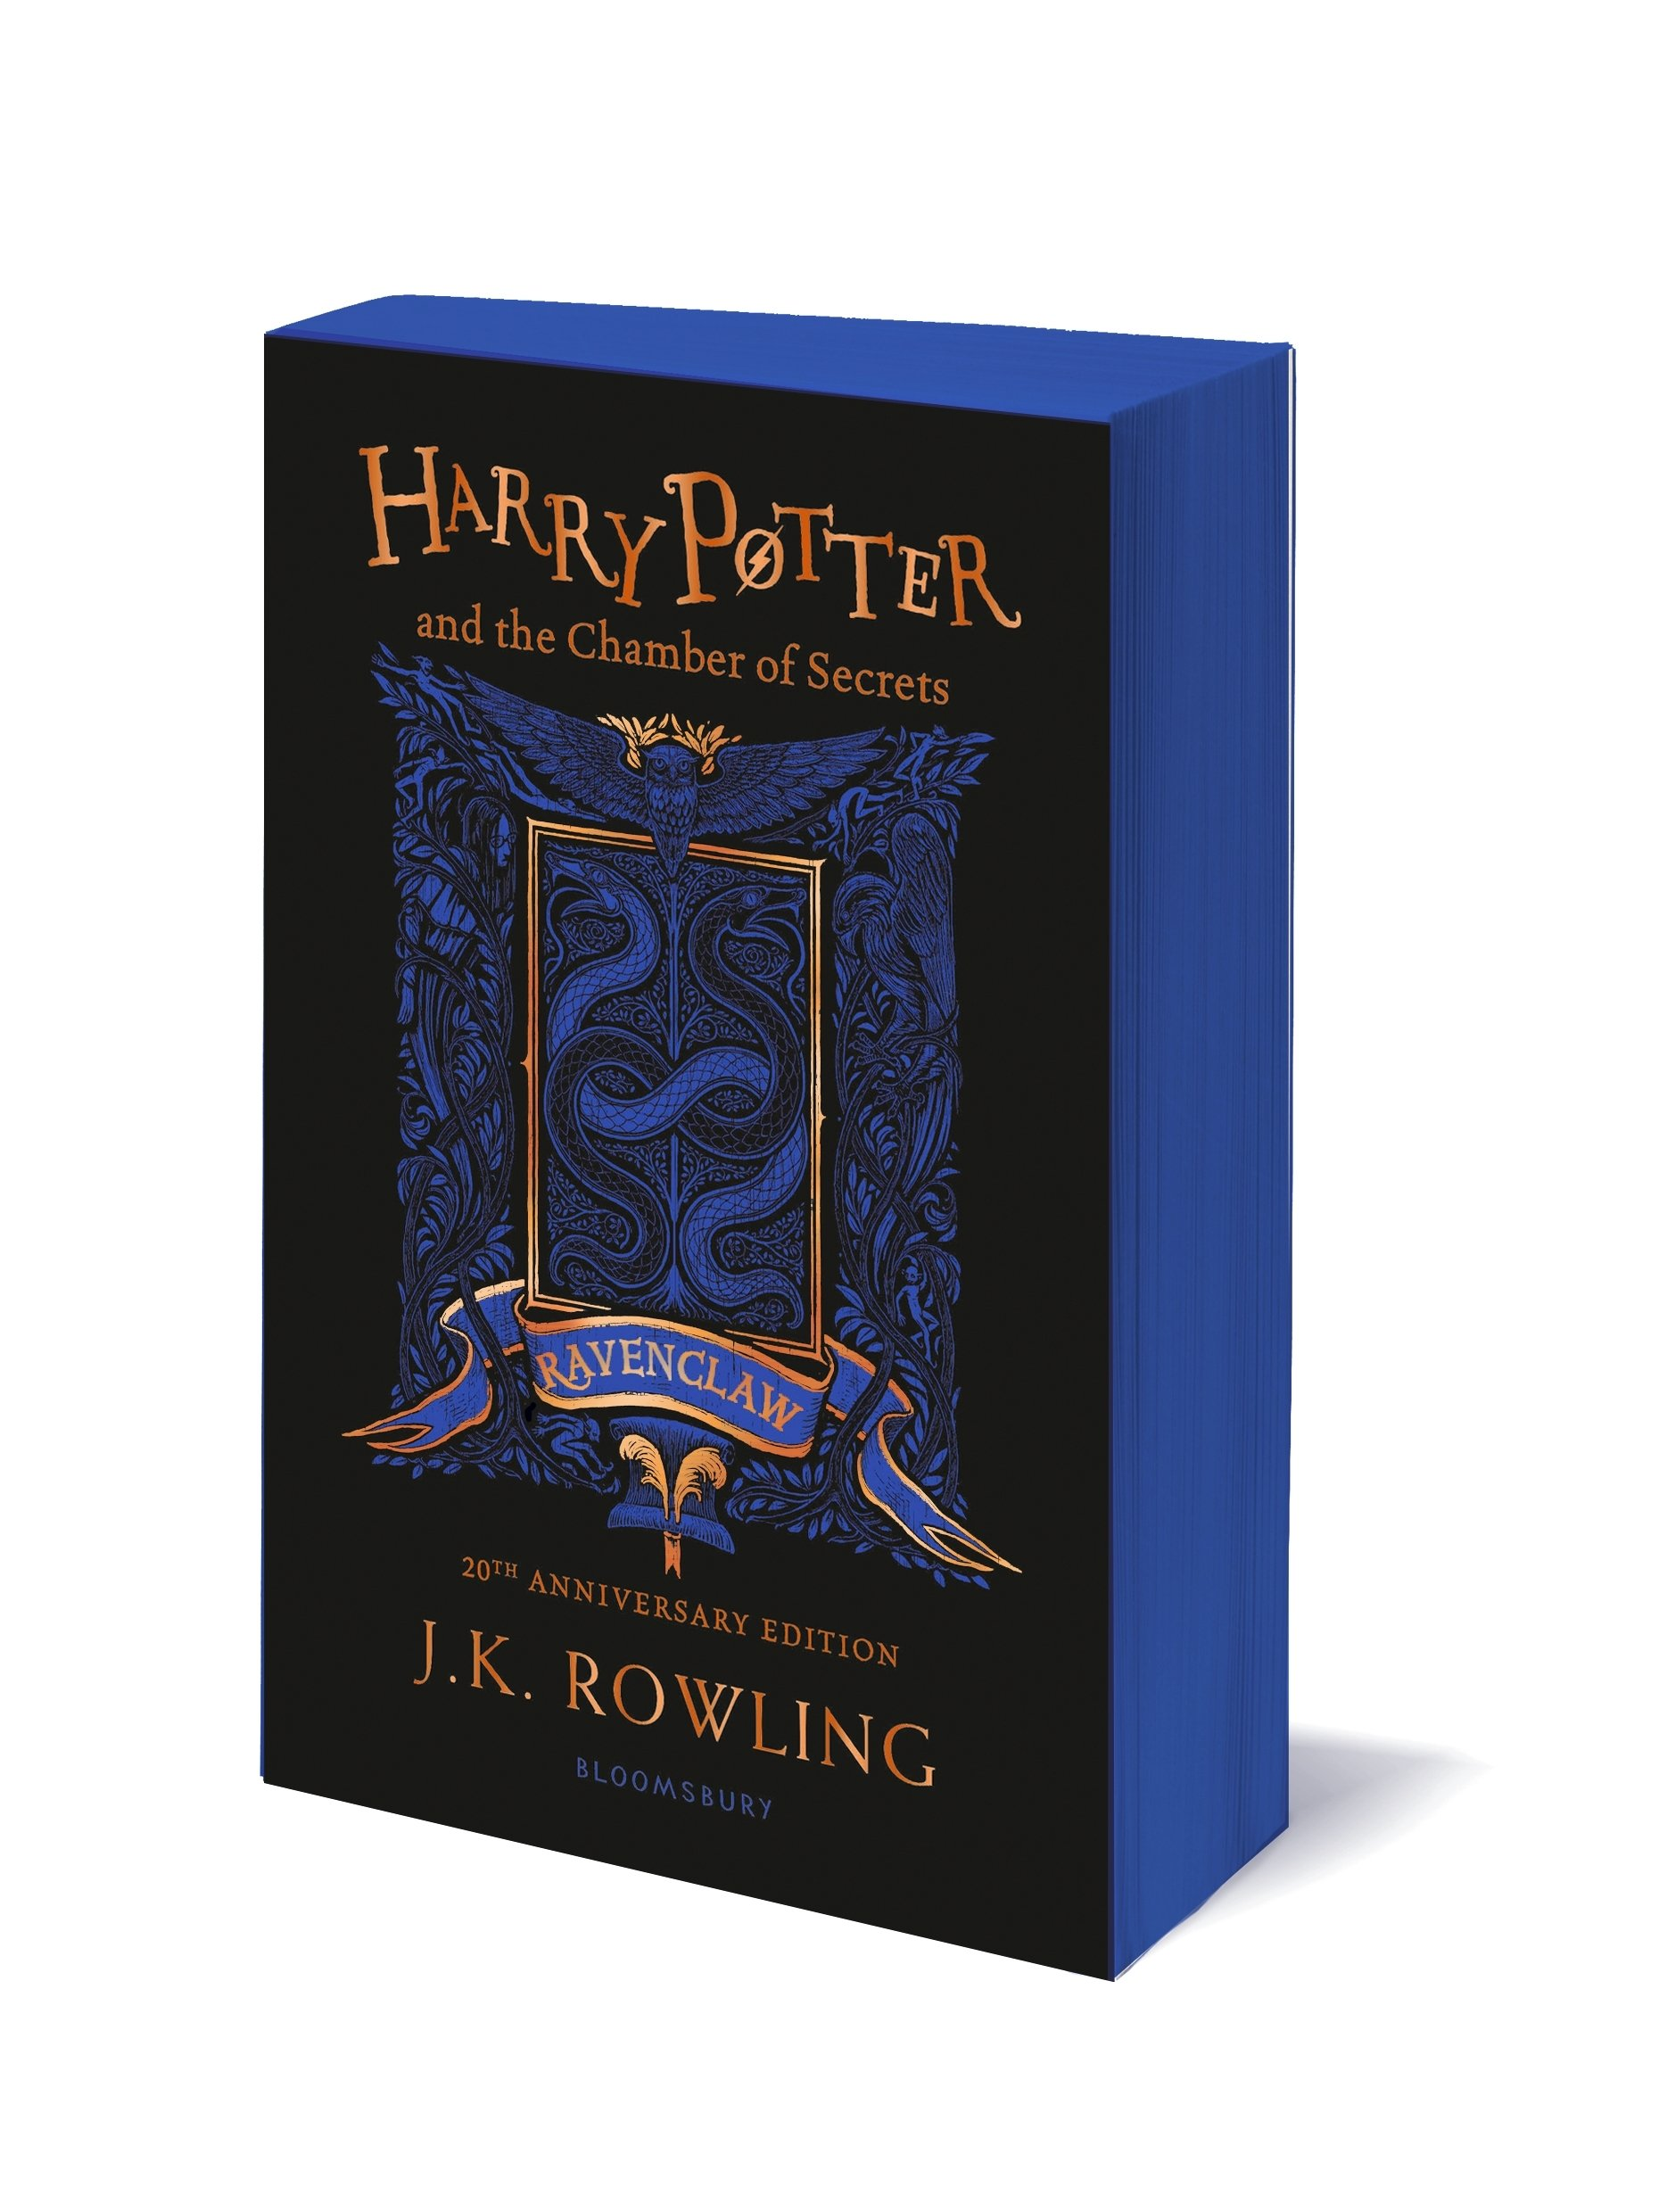 H. P. And The Chamber Of Secrets. Ravenclaw Edition: 2 Harry Potter: Amazon.es: J. K. Rowling, J. K. Rowling: Libros en idiomas extranjeros